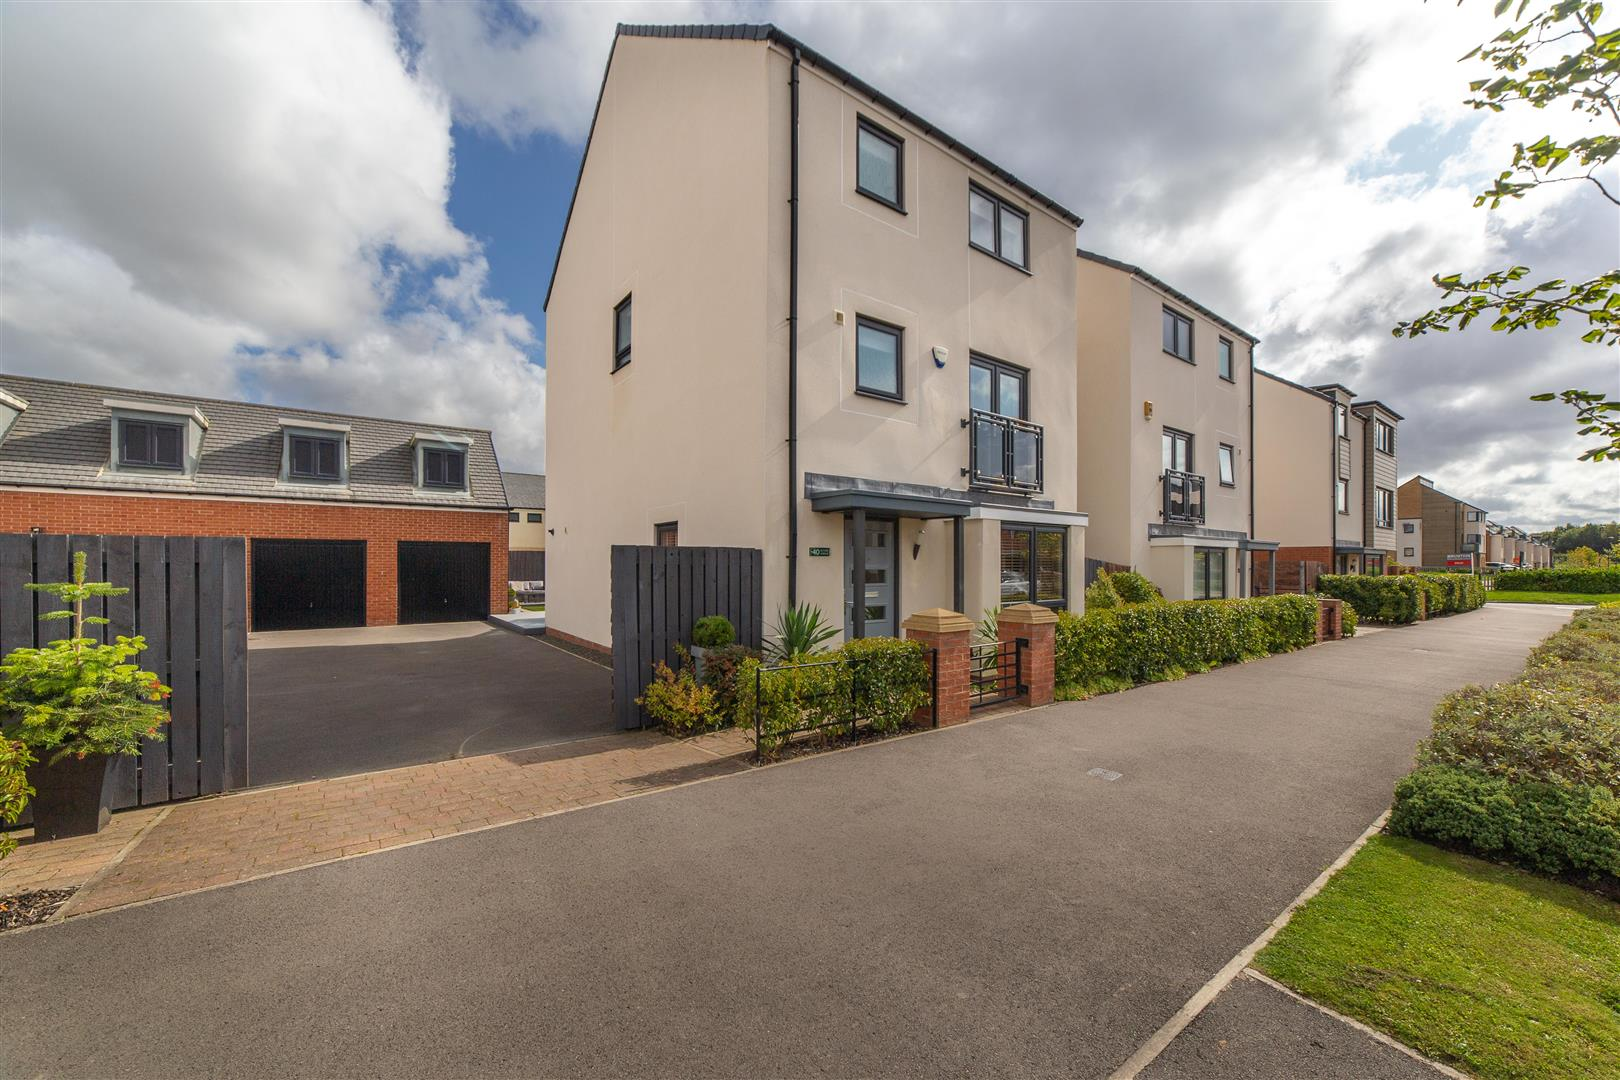 4 bed detached house for sale in Newcastle Upon Tyne, NE13 9AP - Property Image 1